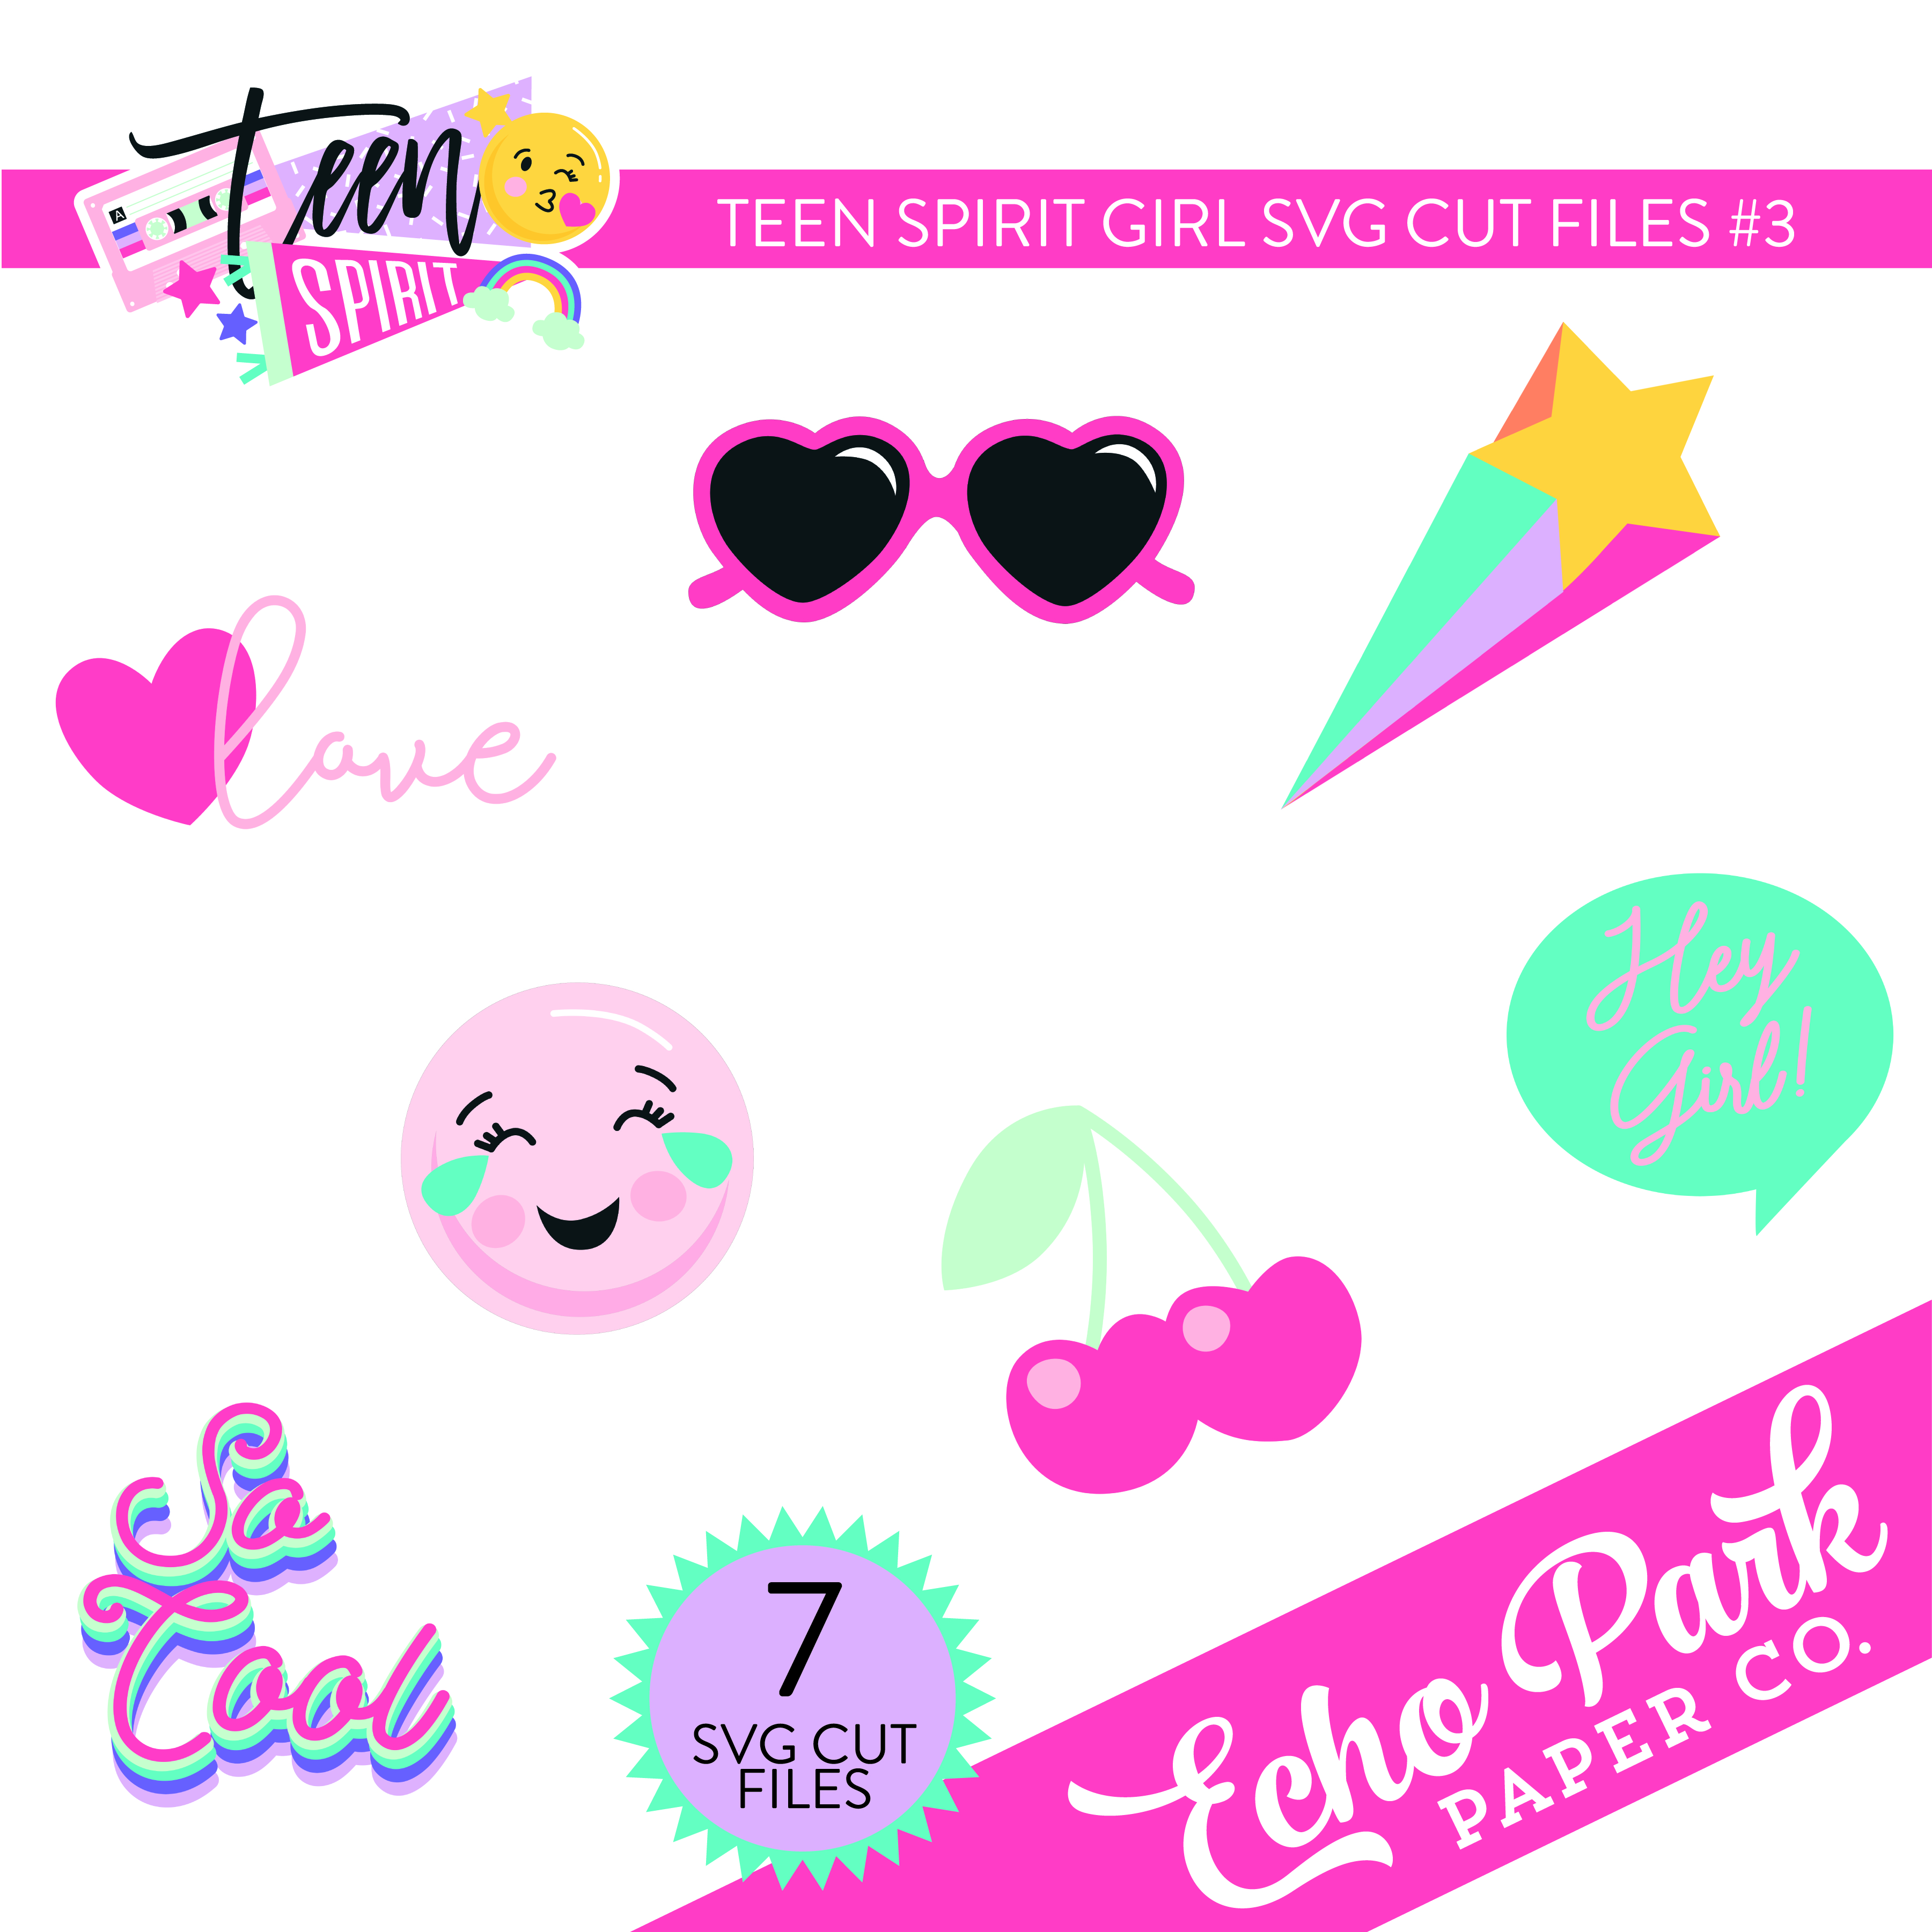 Teen Spirit Girl SVG Cut Files #3